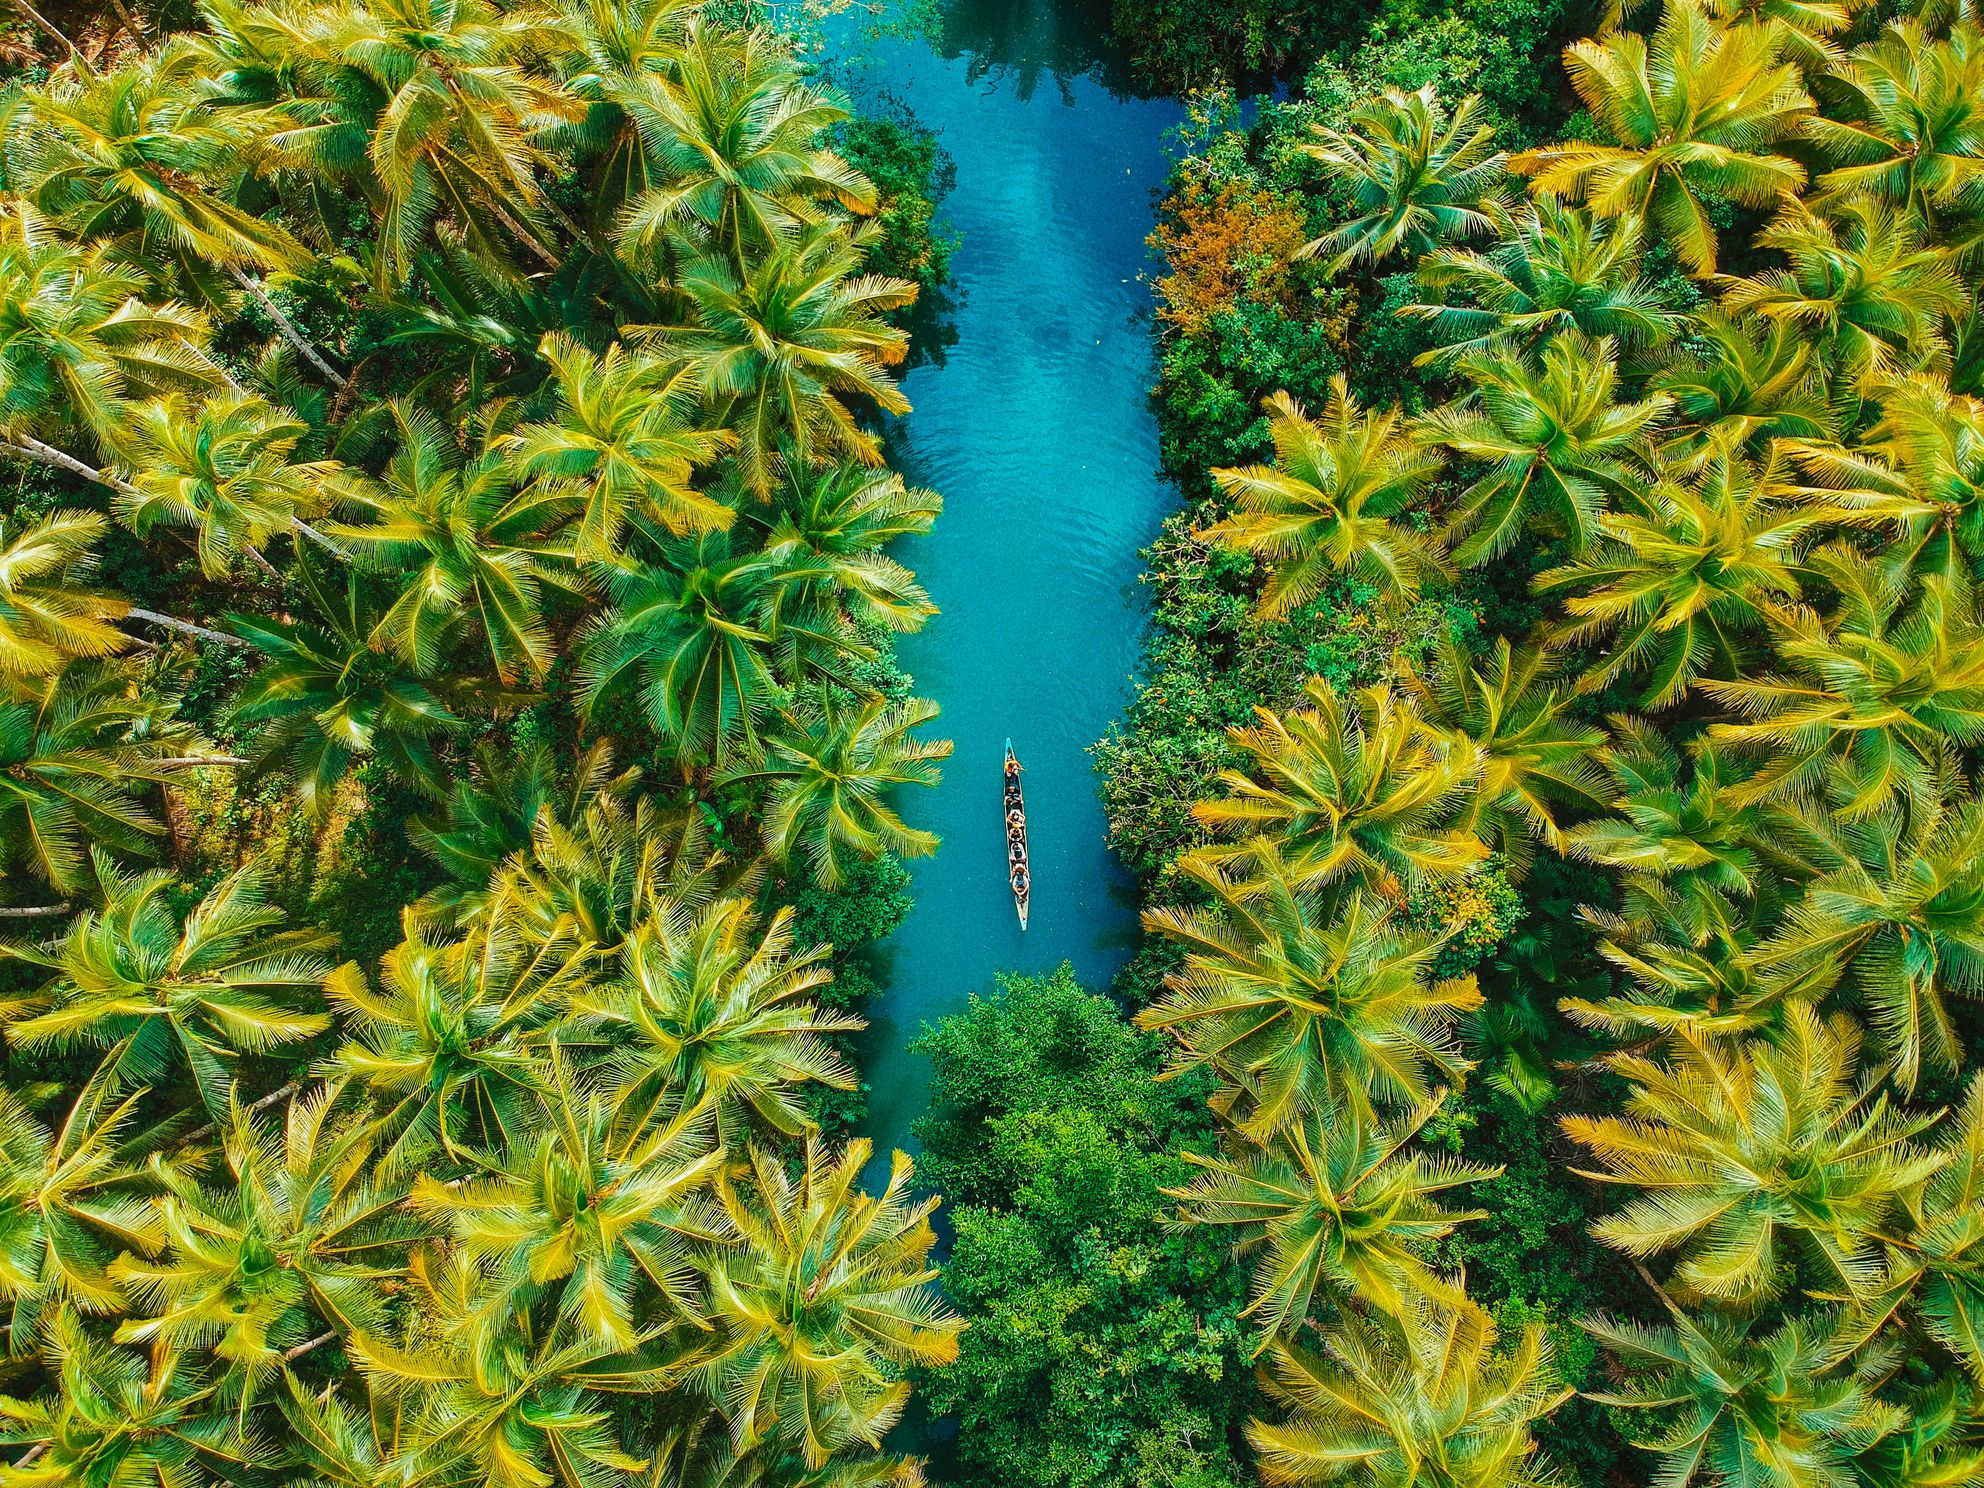 Aerial view of a boat sailing through a lagoon surrounded by coconut palm forests in Siargao, Philippines